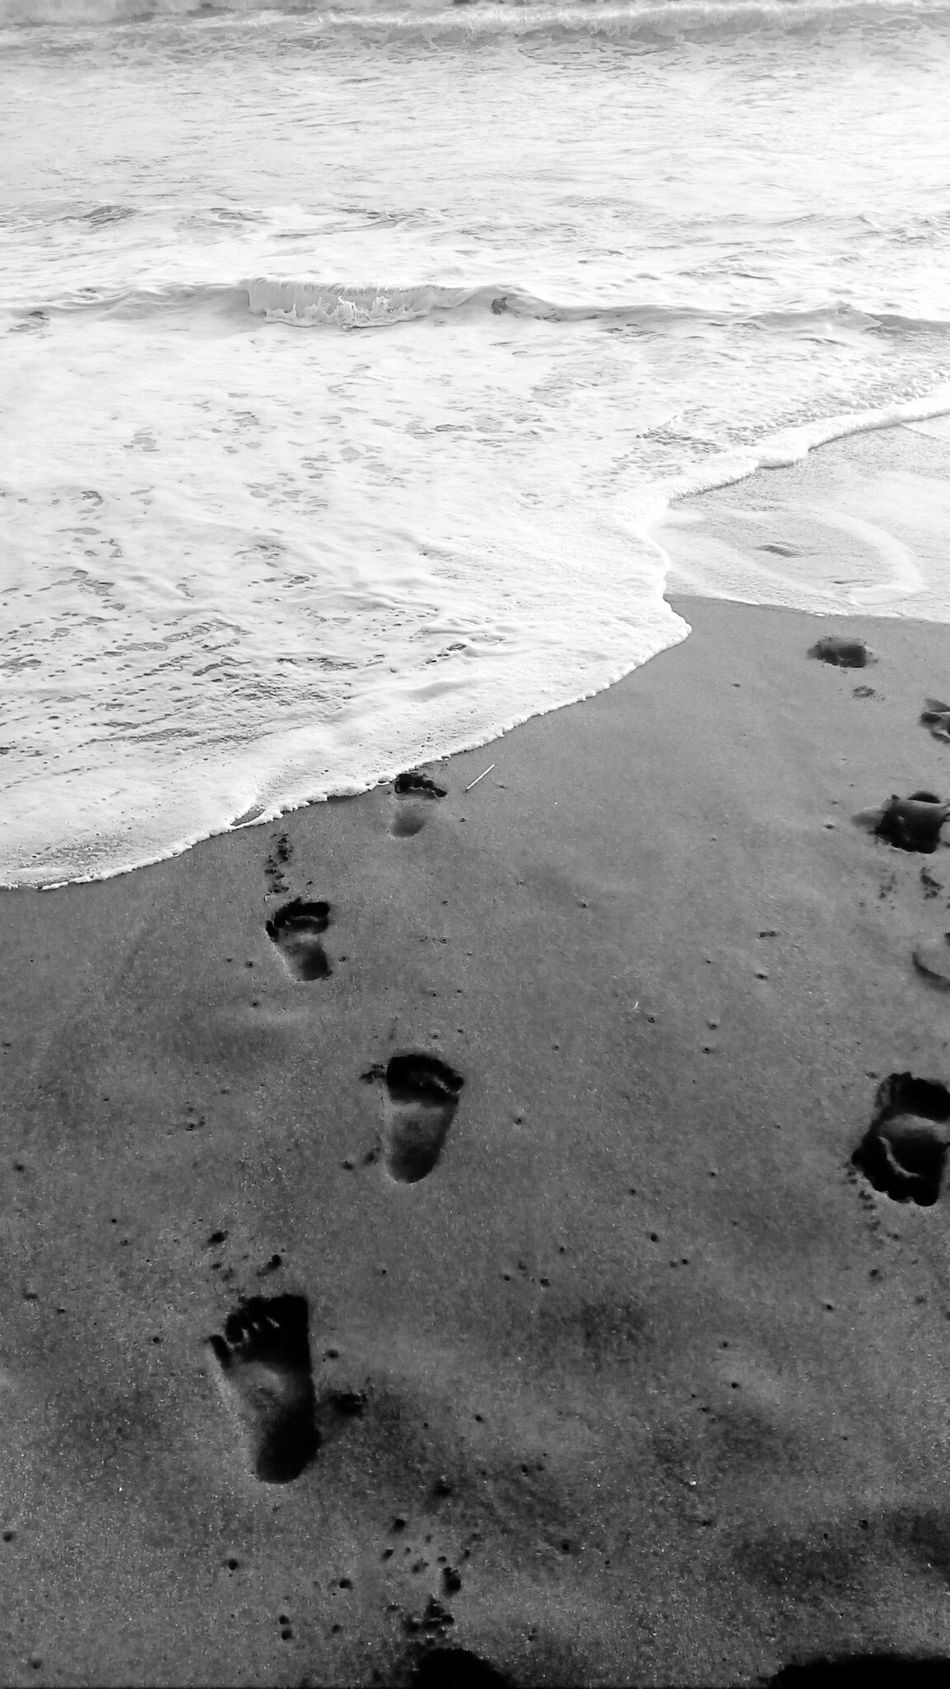 Footprints in the sand Beach Sand Nature Outdoors No People Philippines Eyeem Philippines Blackandwhite Mobilephotography Mobilephotographyphilippines Snoworld.one/bestshot